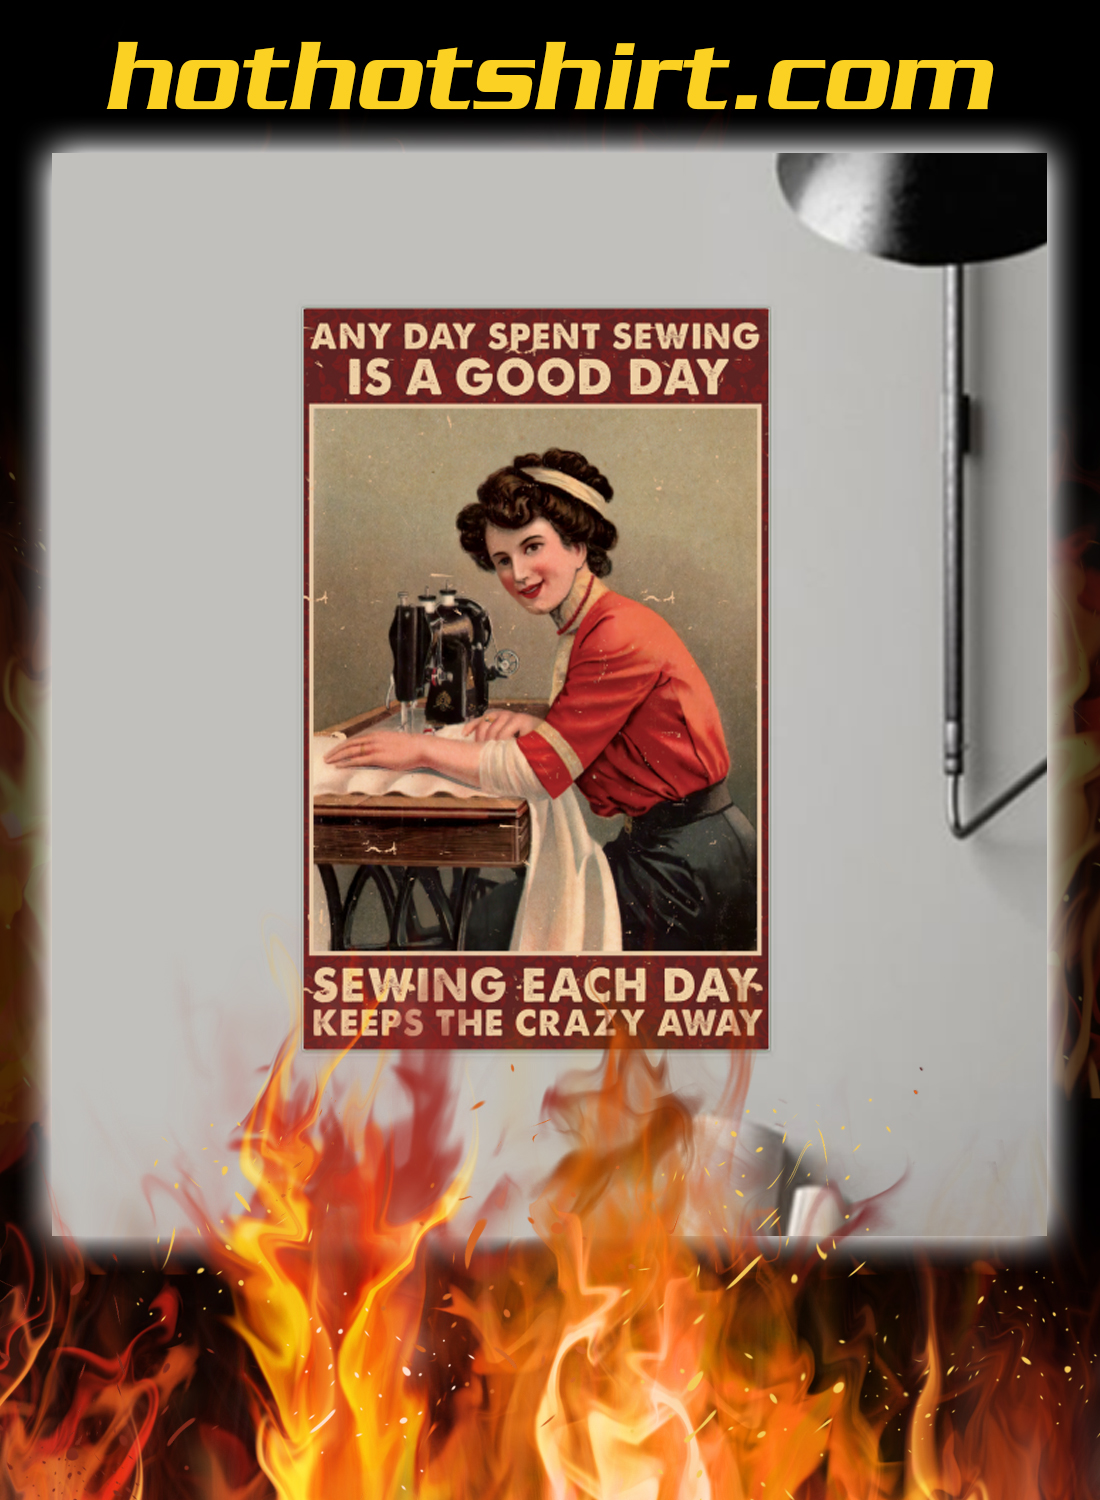 Any day spent sewing is a good day sewing each day poster 1